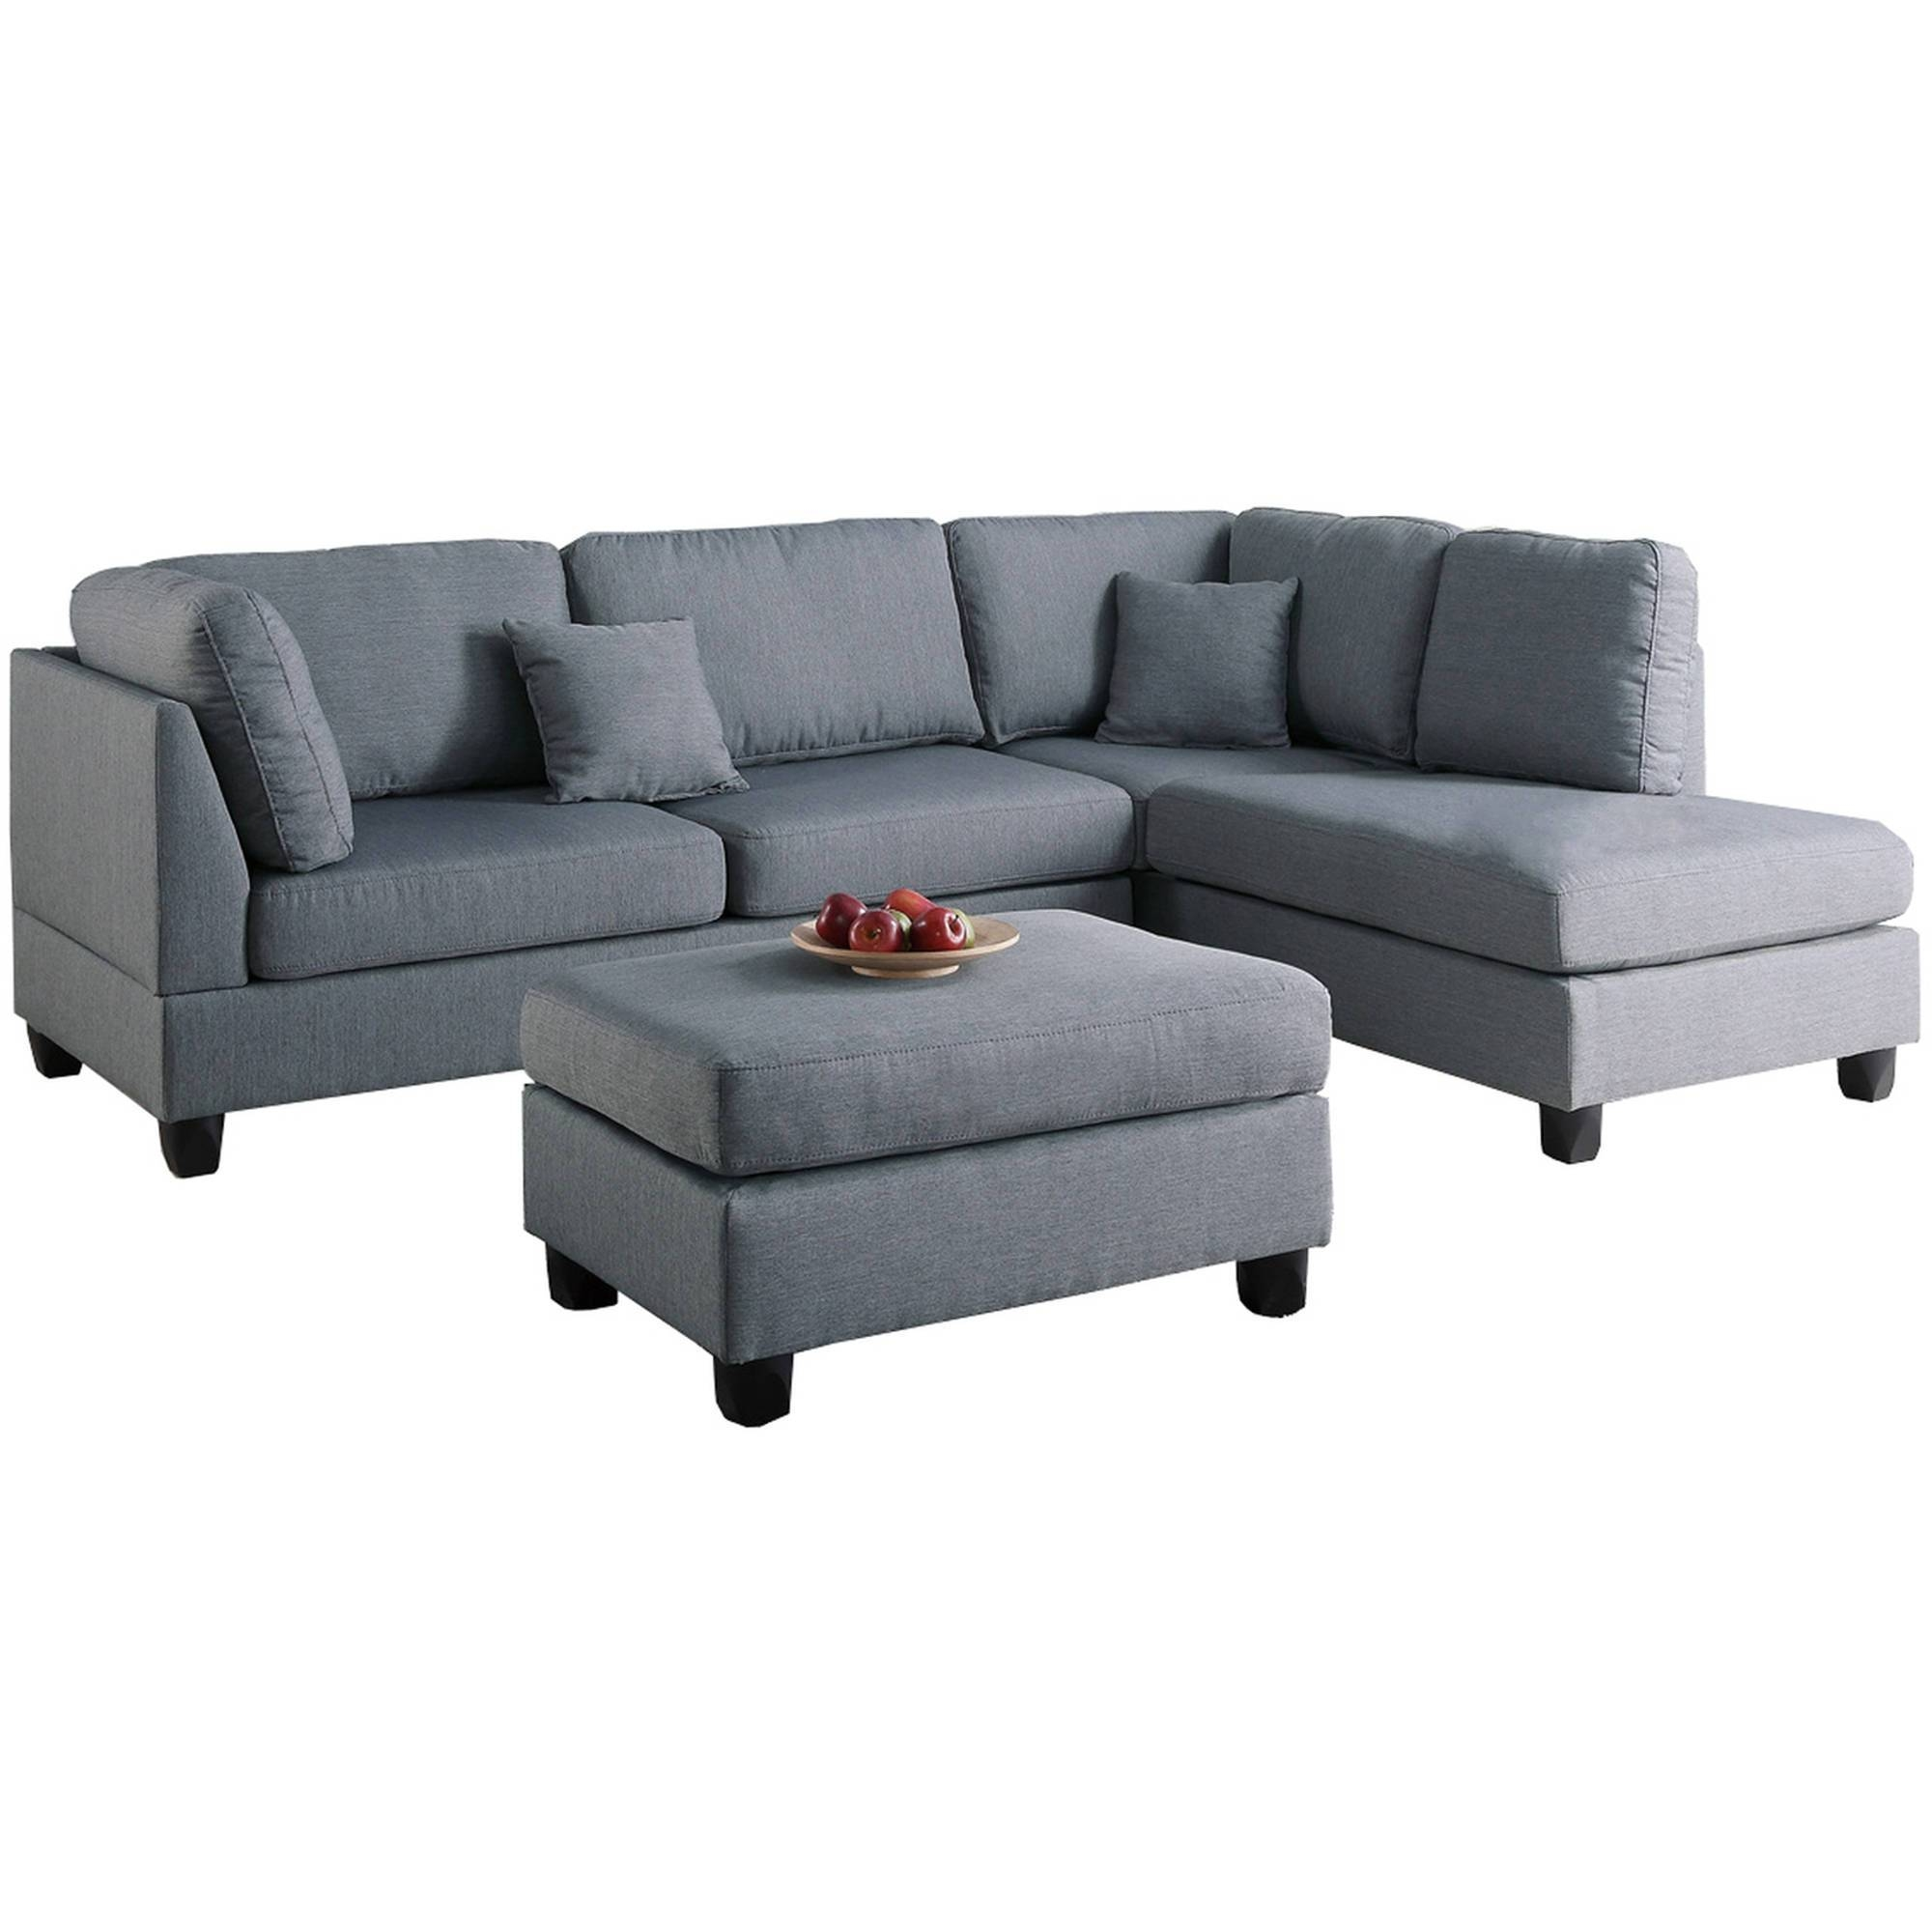 Living Room Furniture Inside Sofa Chairs For Living Room (View 6 of 15)